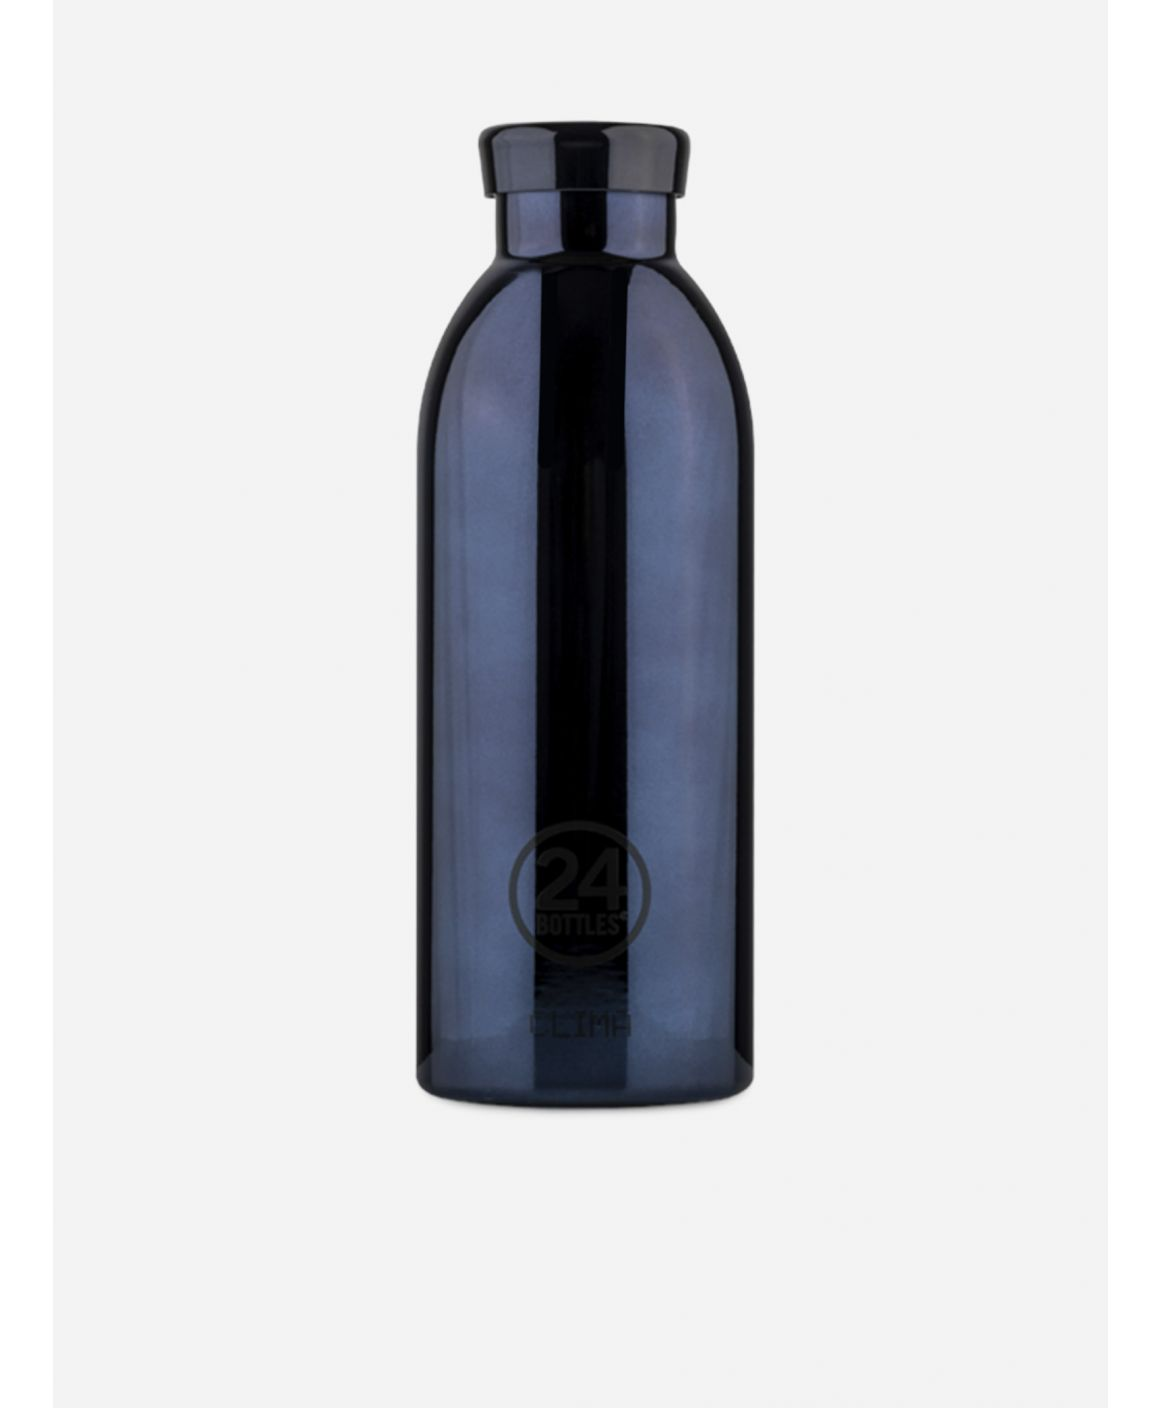 Clima Bottle Black Radiance 500ml